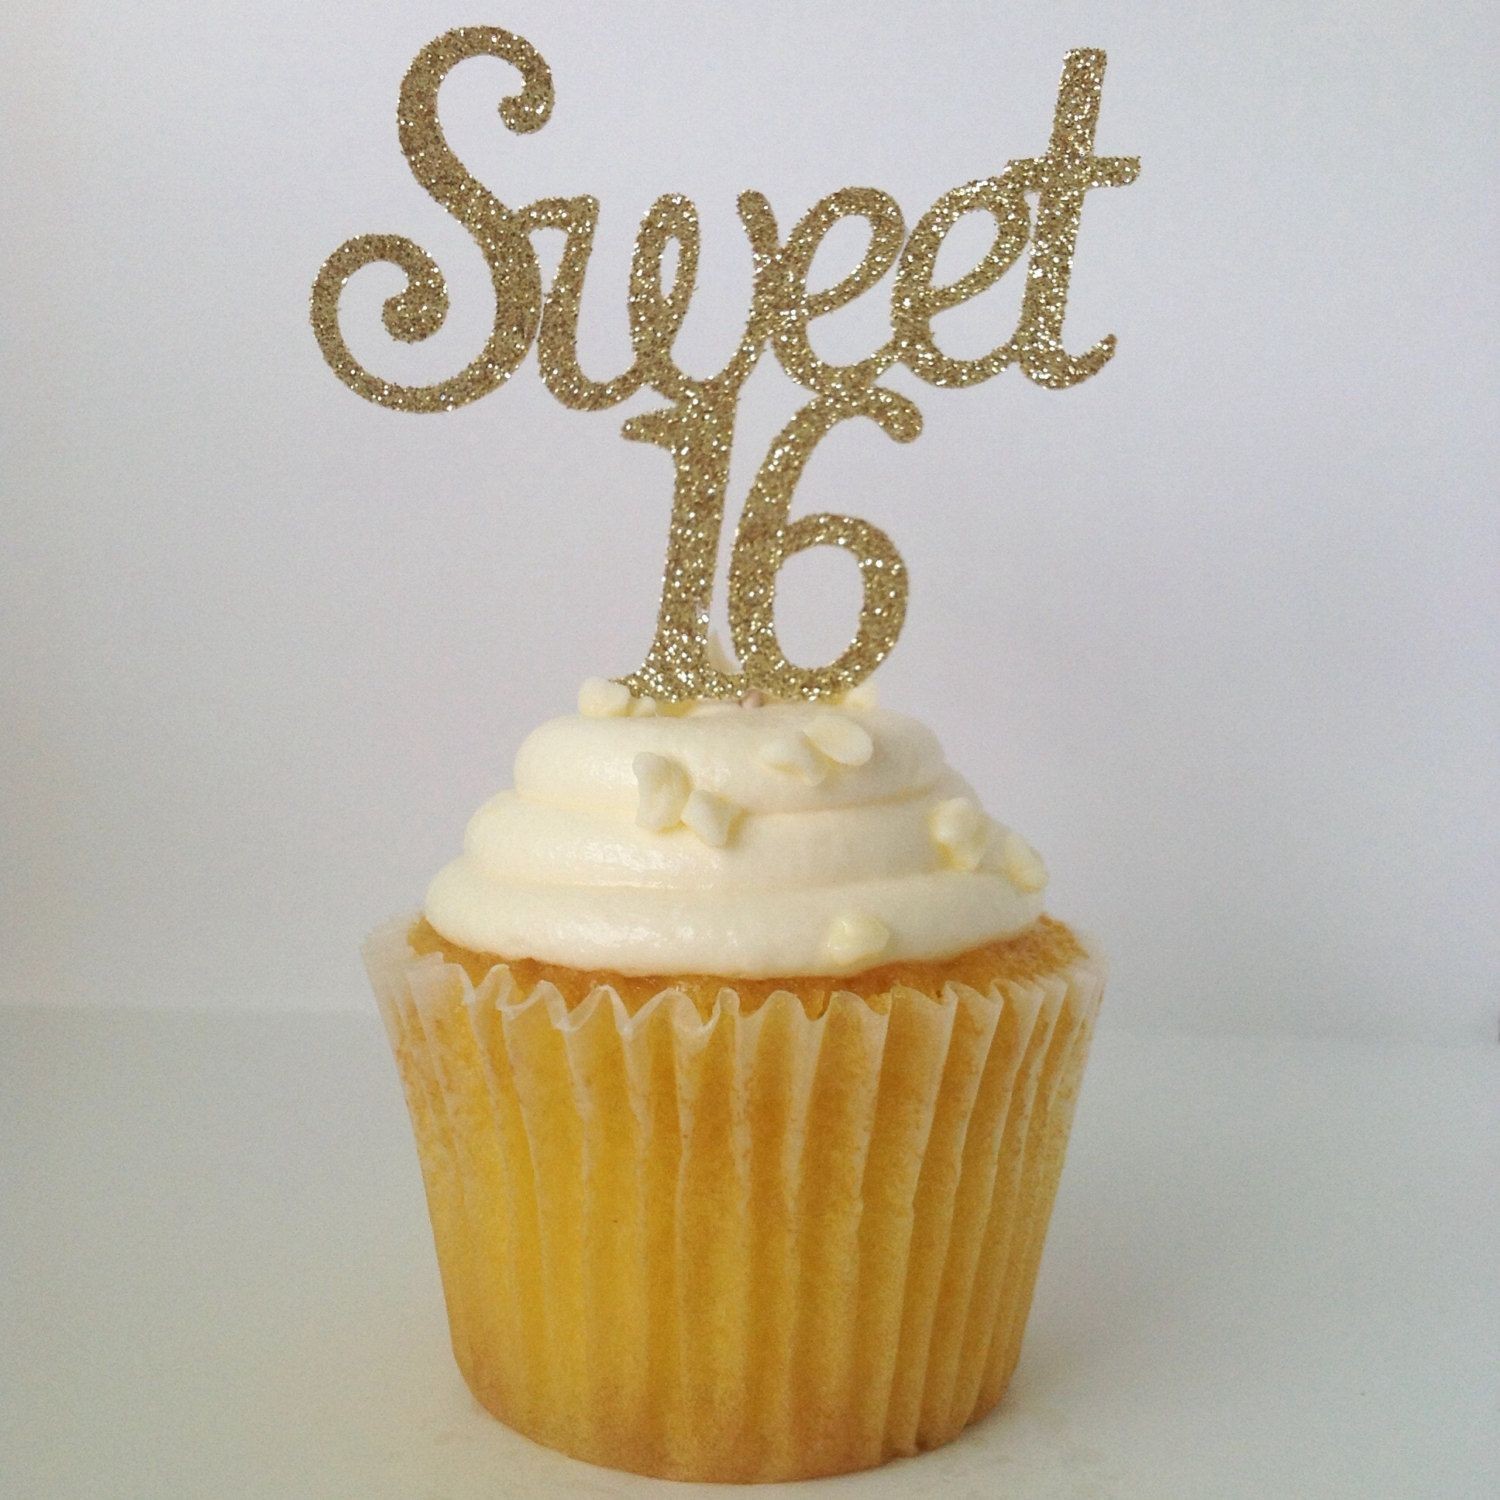 Gold Birthday Decorations 21st Cupcake Toppers Gold Glitter 21st Cupcake Toppers 21st